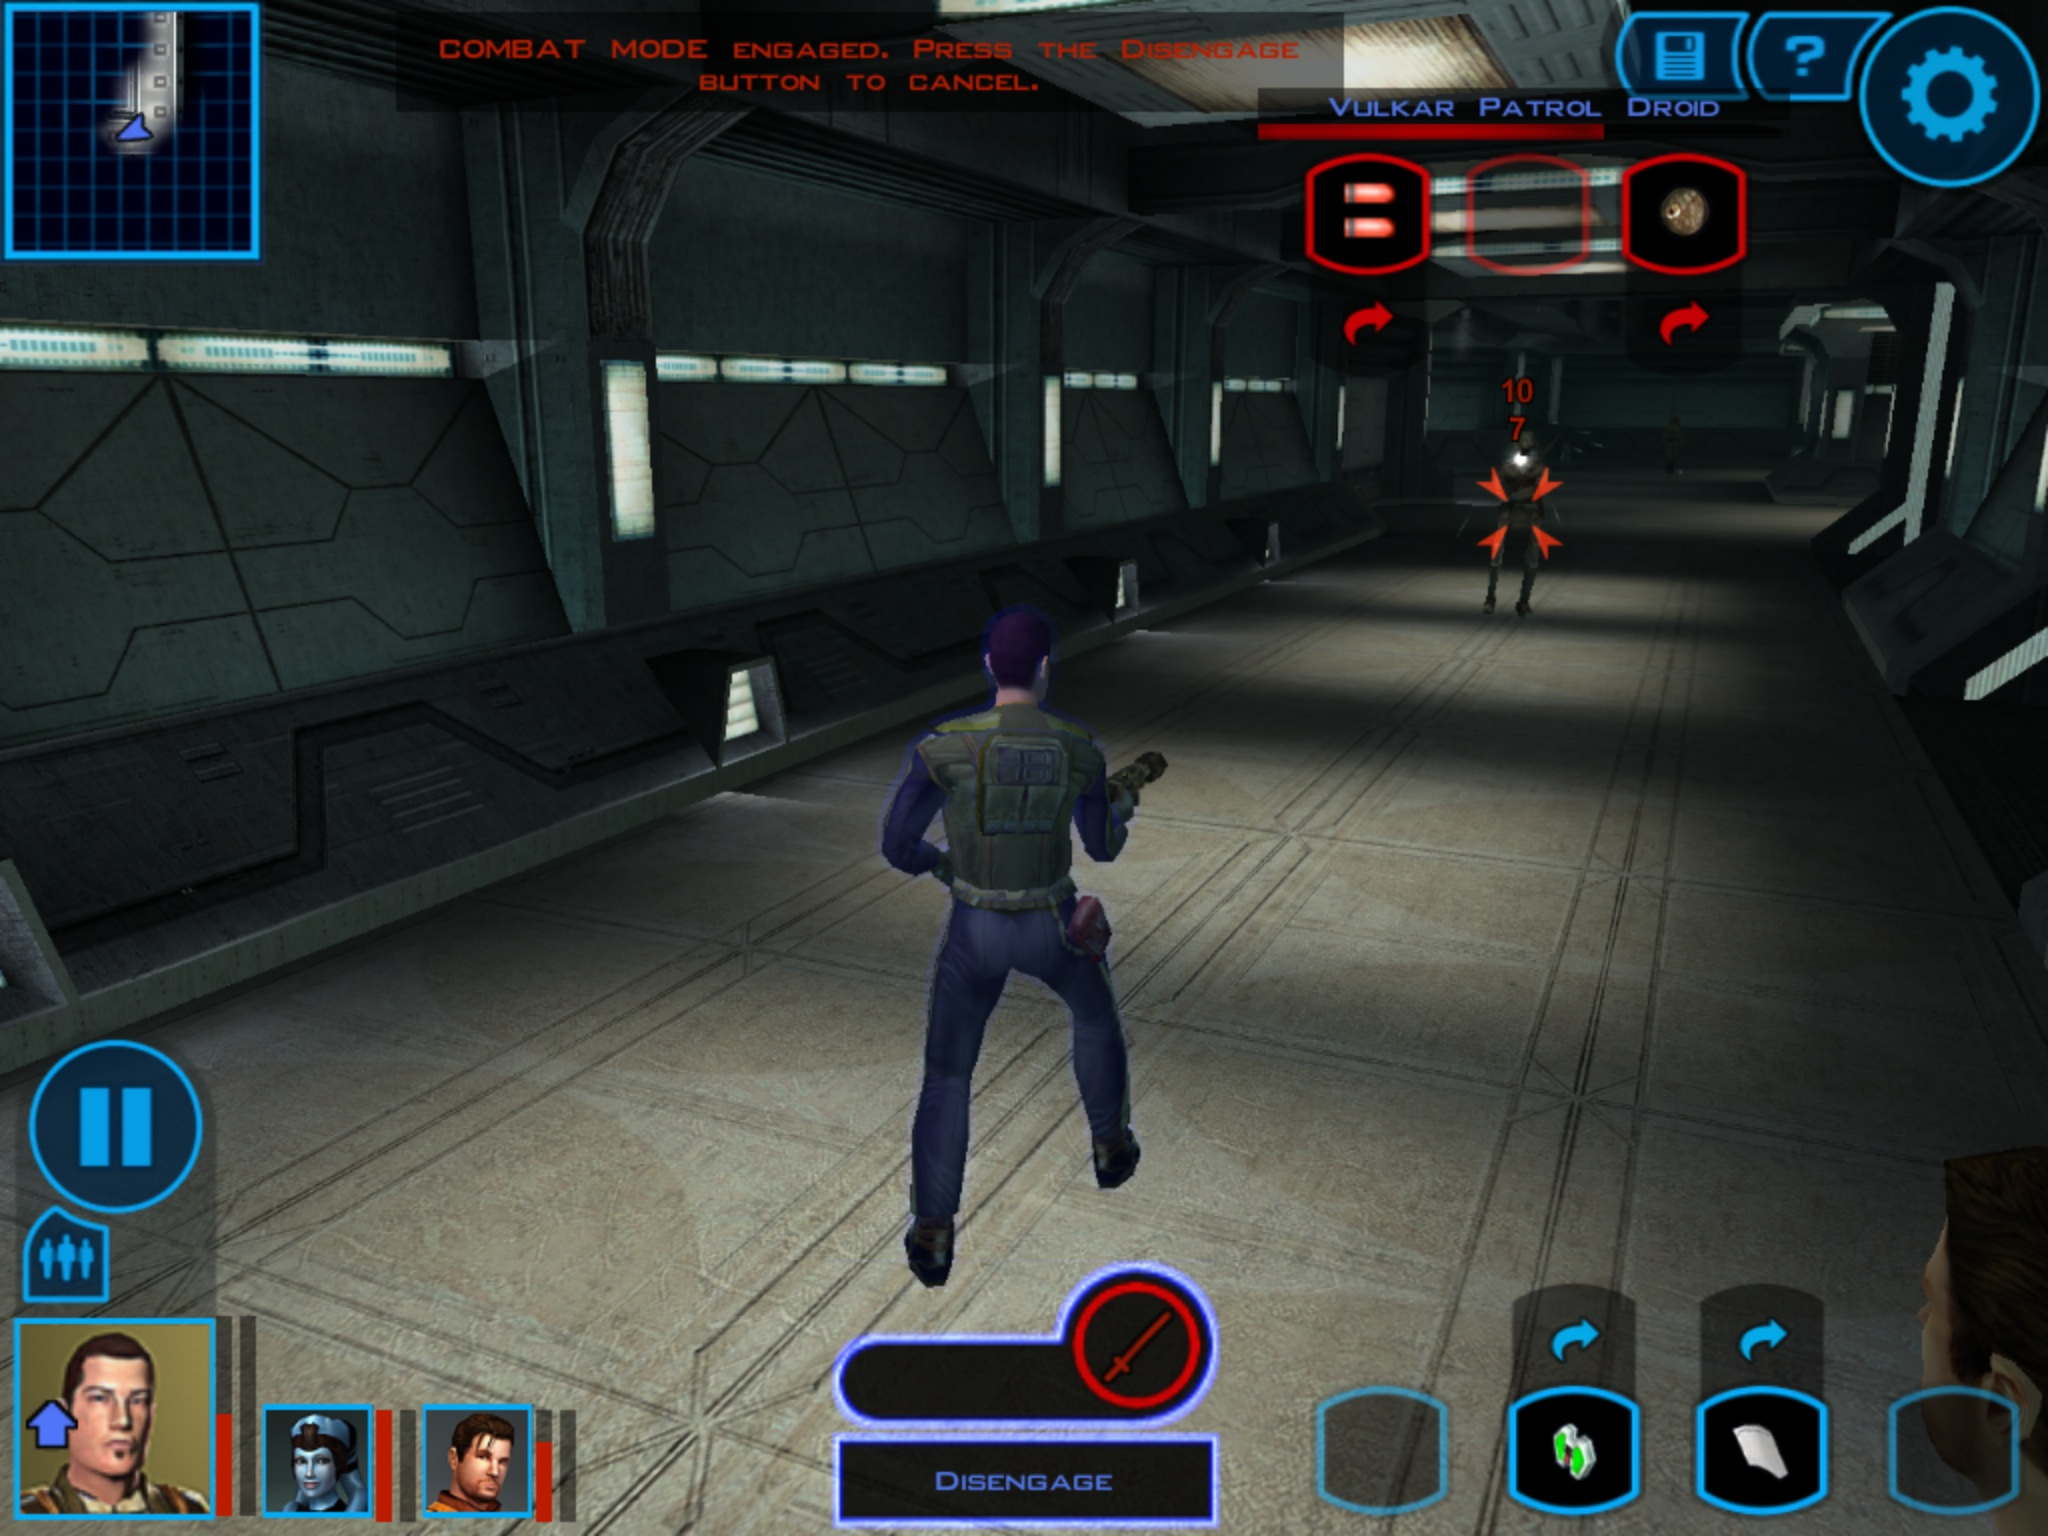 Knights of the Old Republic, Bioware's classic Star Wars RPG, is out right now on Android